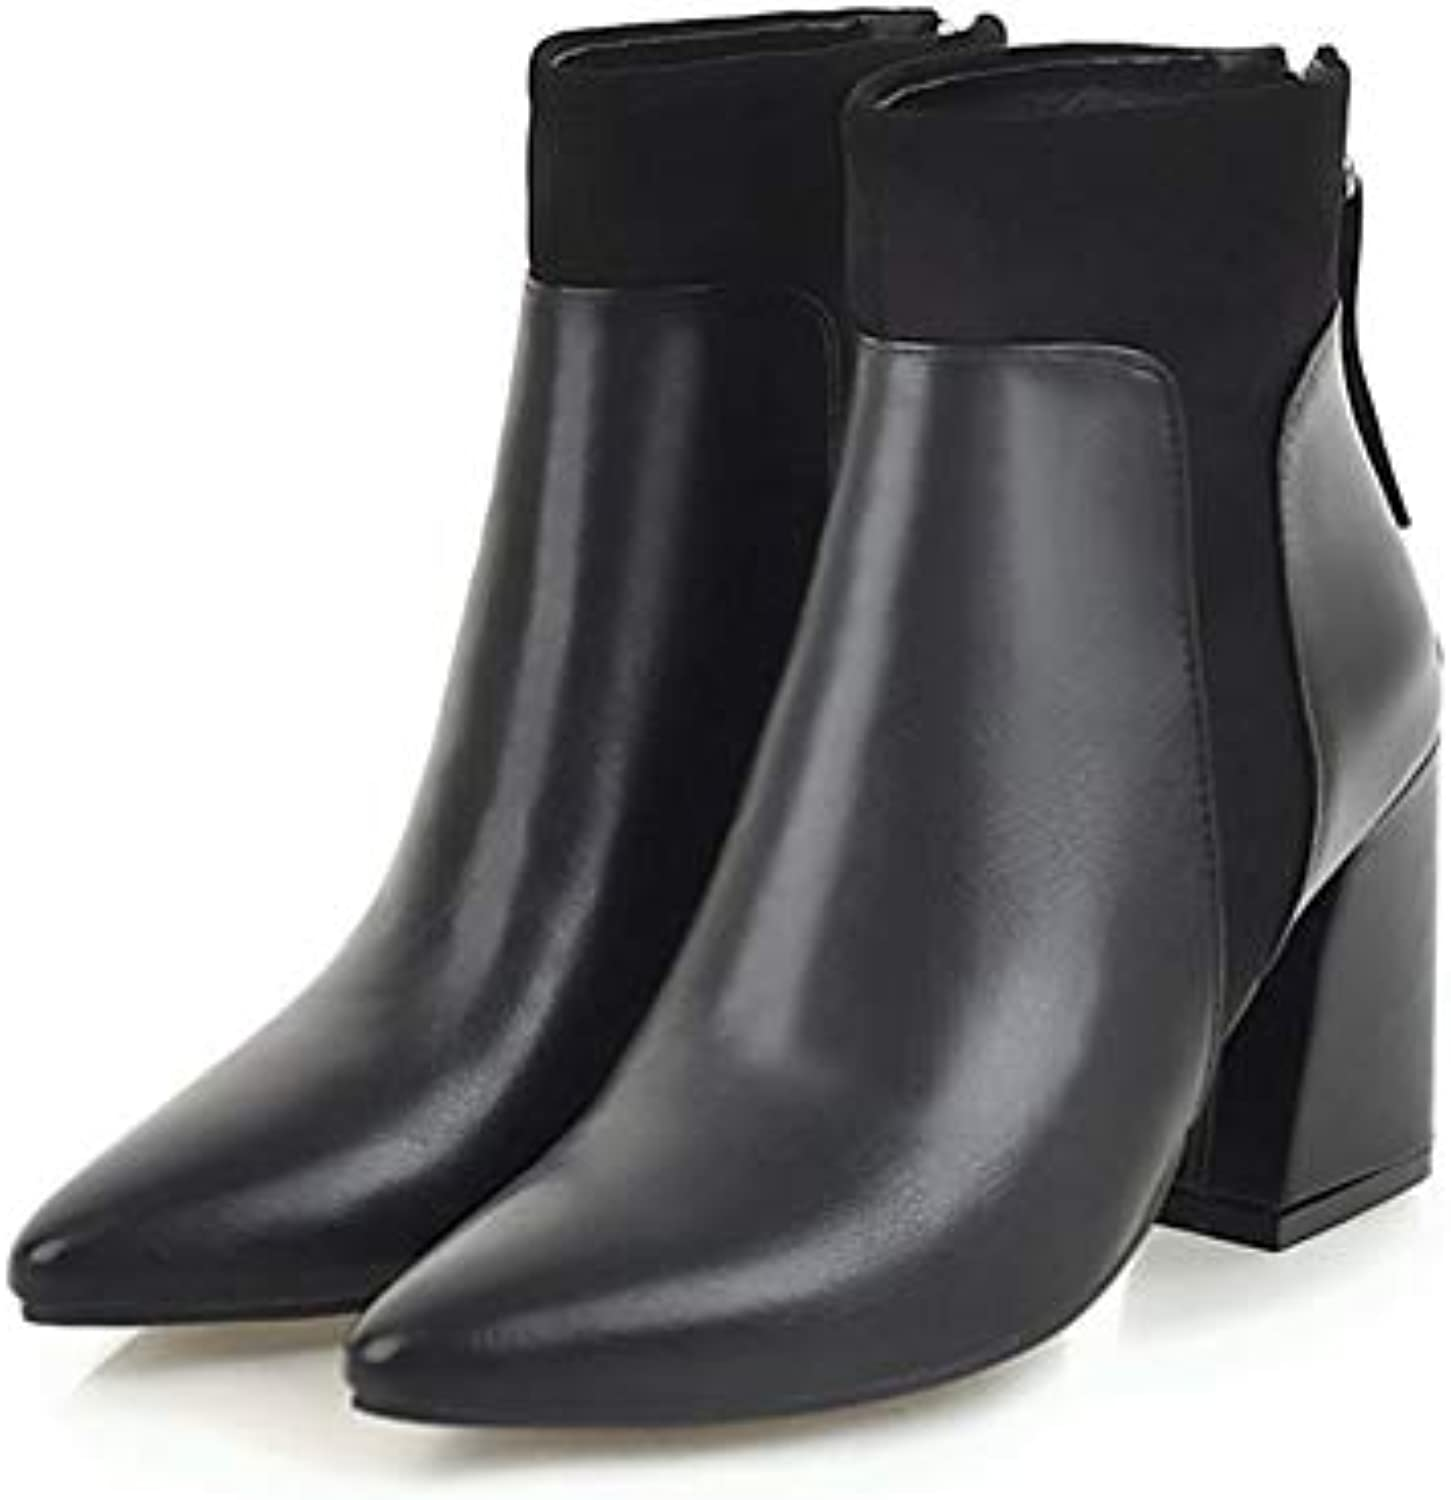 T-JULY Women 8.5cm High Heels Martins Retro Pointed Chelsea Ankle Boots Thick Block Heels Winter White Black shoes